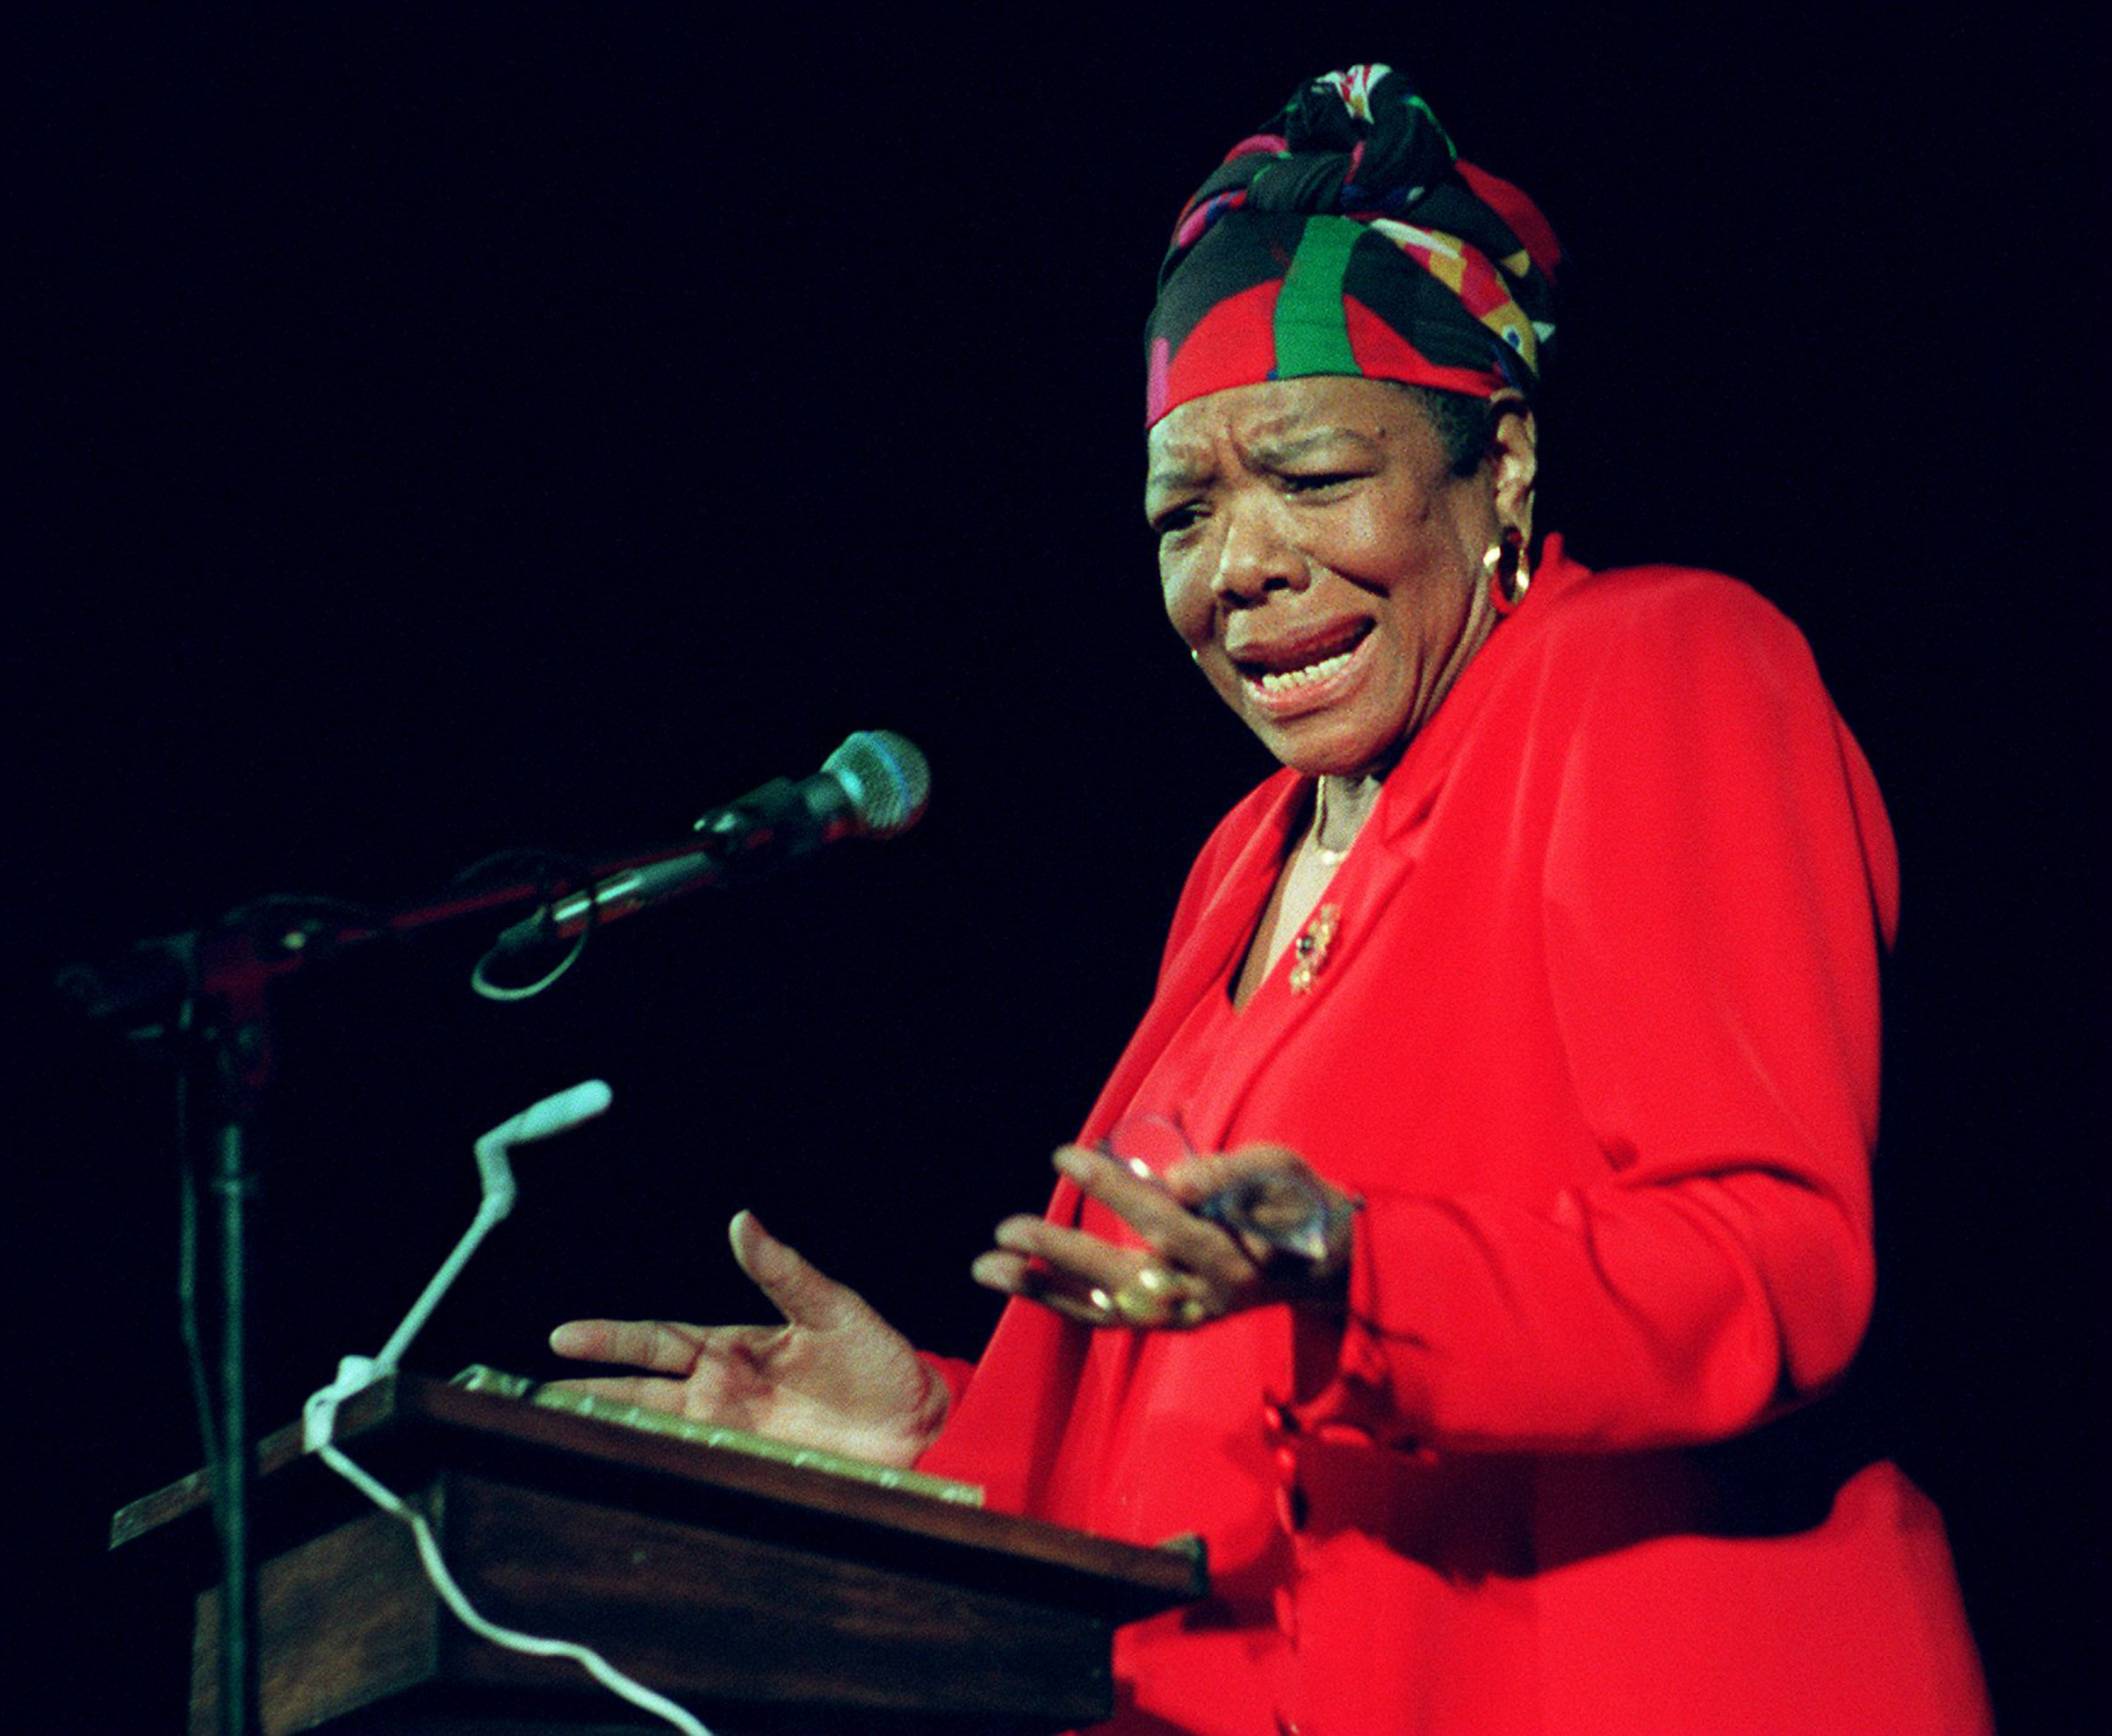 Maya Angelou reads poetry to Tufts University students at the Somerville Theatre in Somerville, Mass. on April 28, 1997.